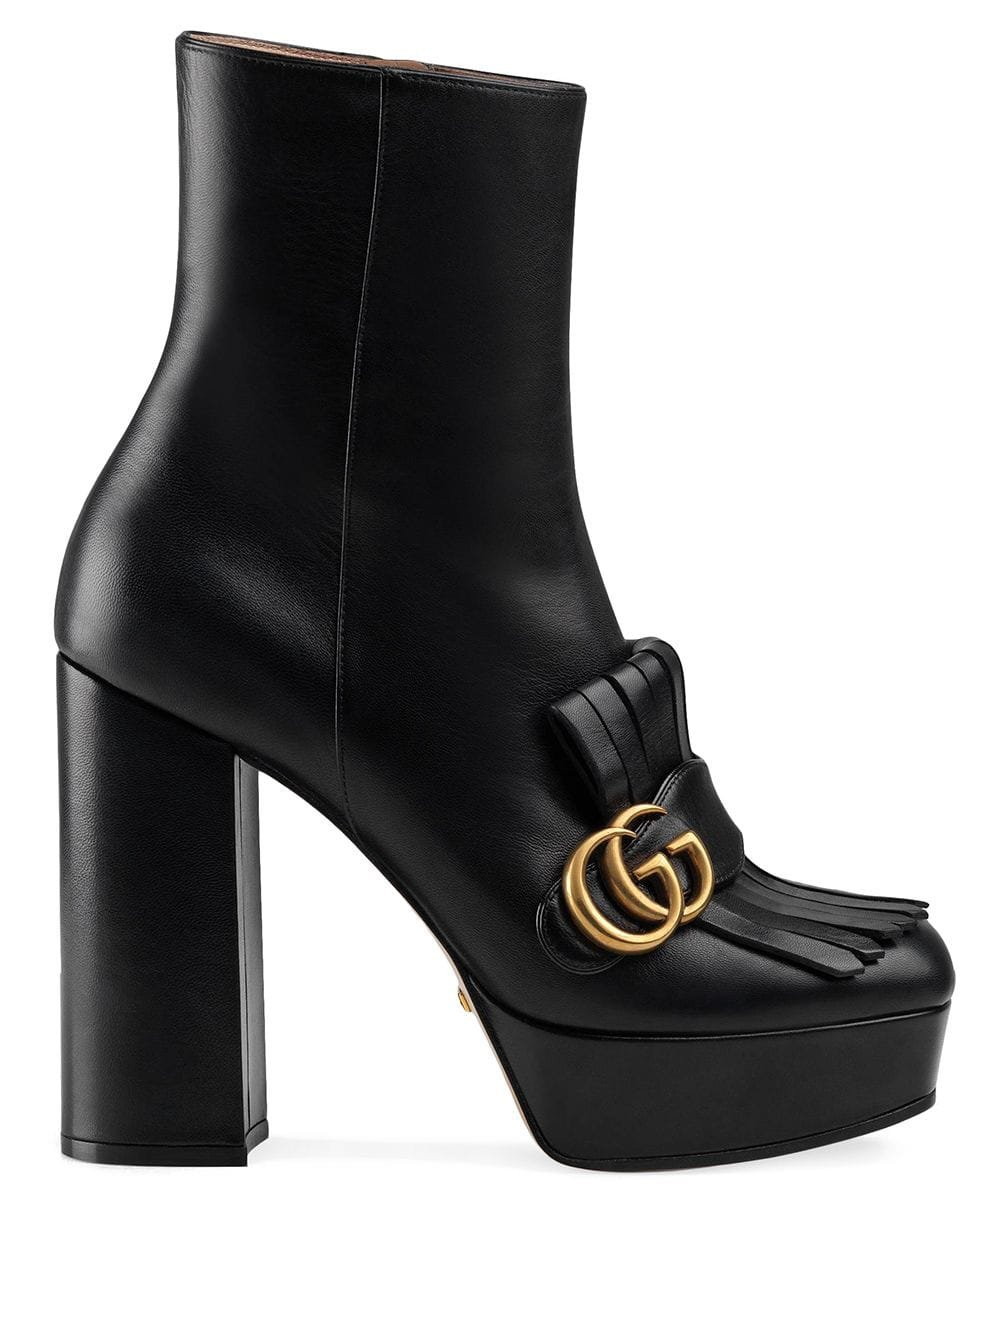 Black Gucci Leather Ankle Boot With Plateau And Fringe   Farfetch.com